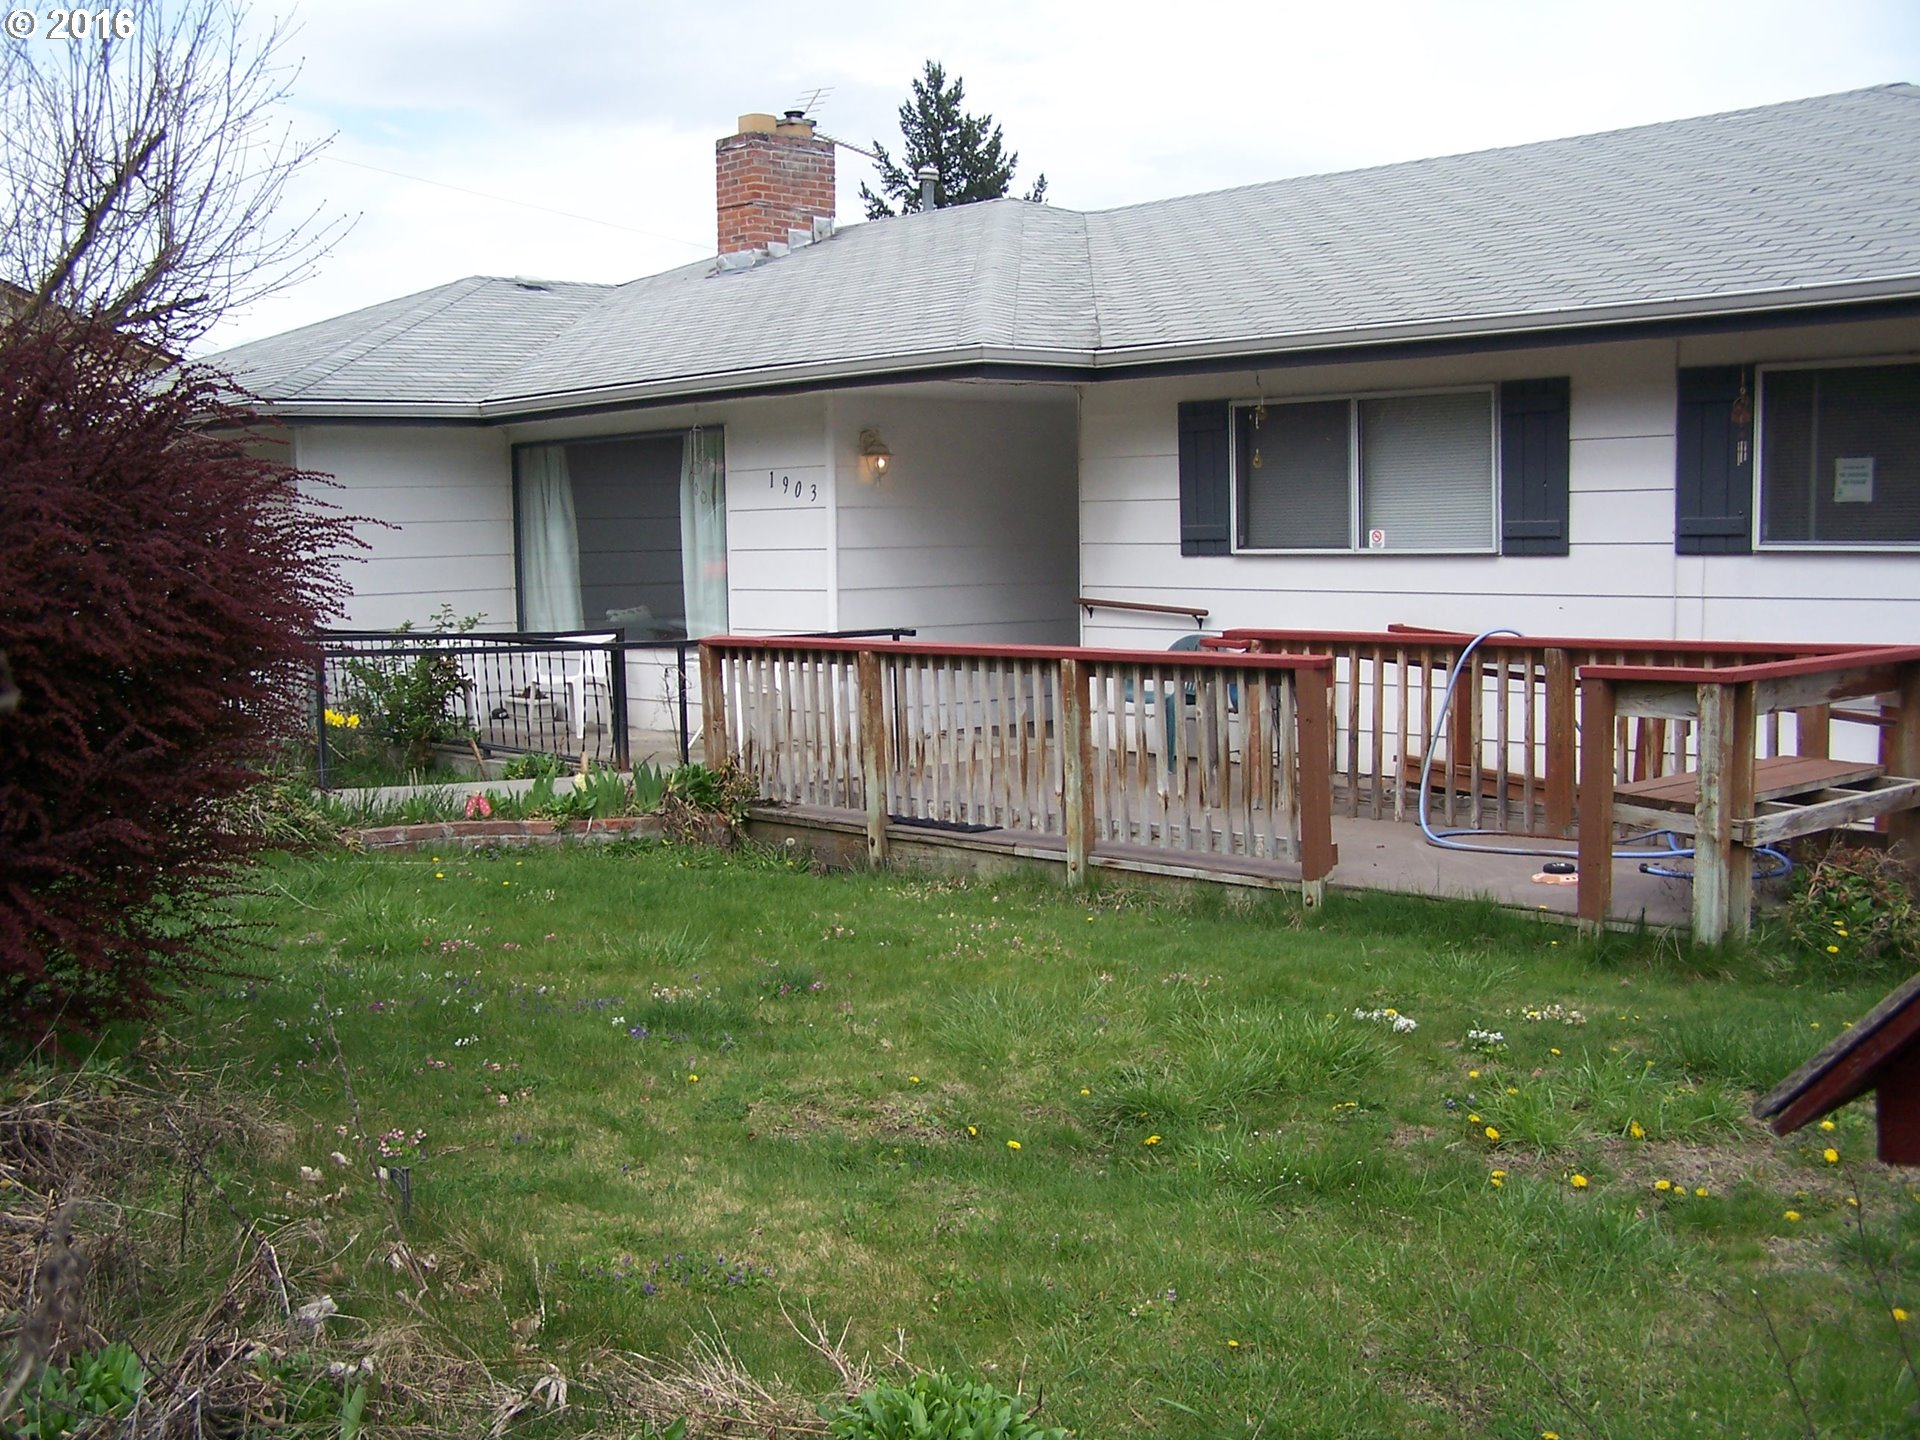 4022 sq. ft 8 bedrooms 4 bathrooms  House For Sale,The Dalles, OR